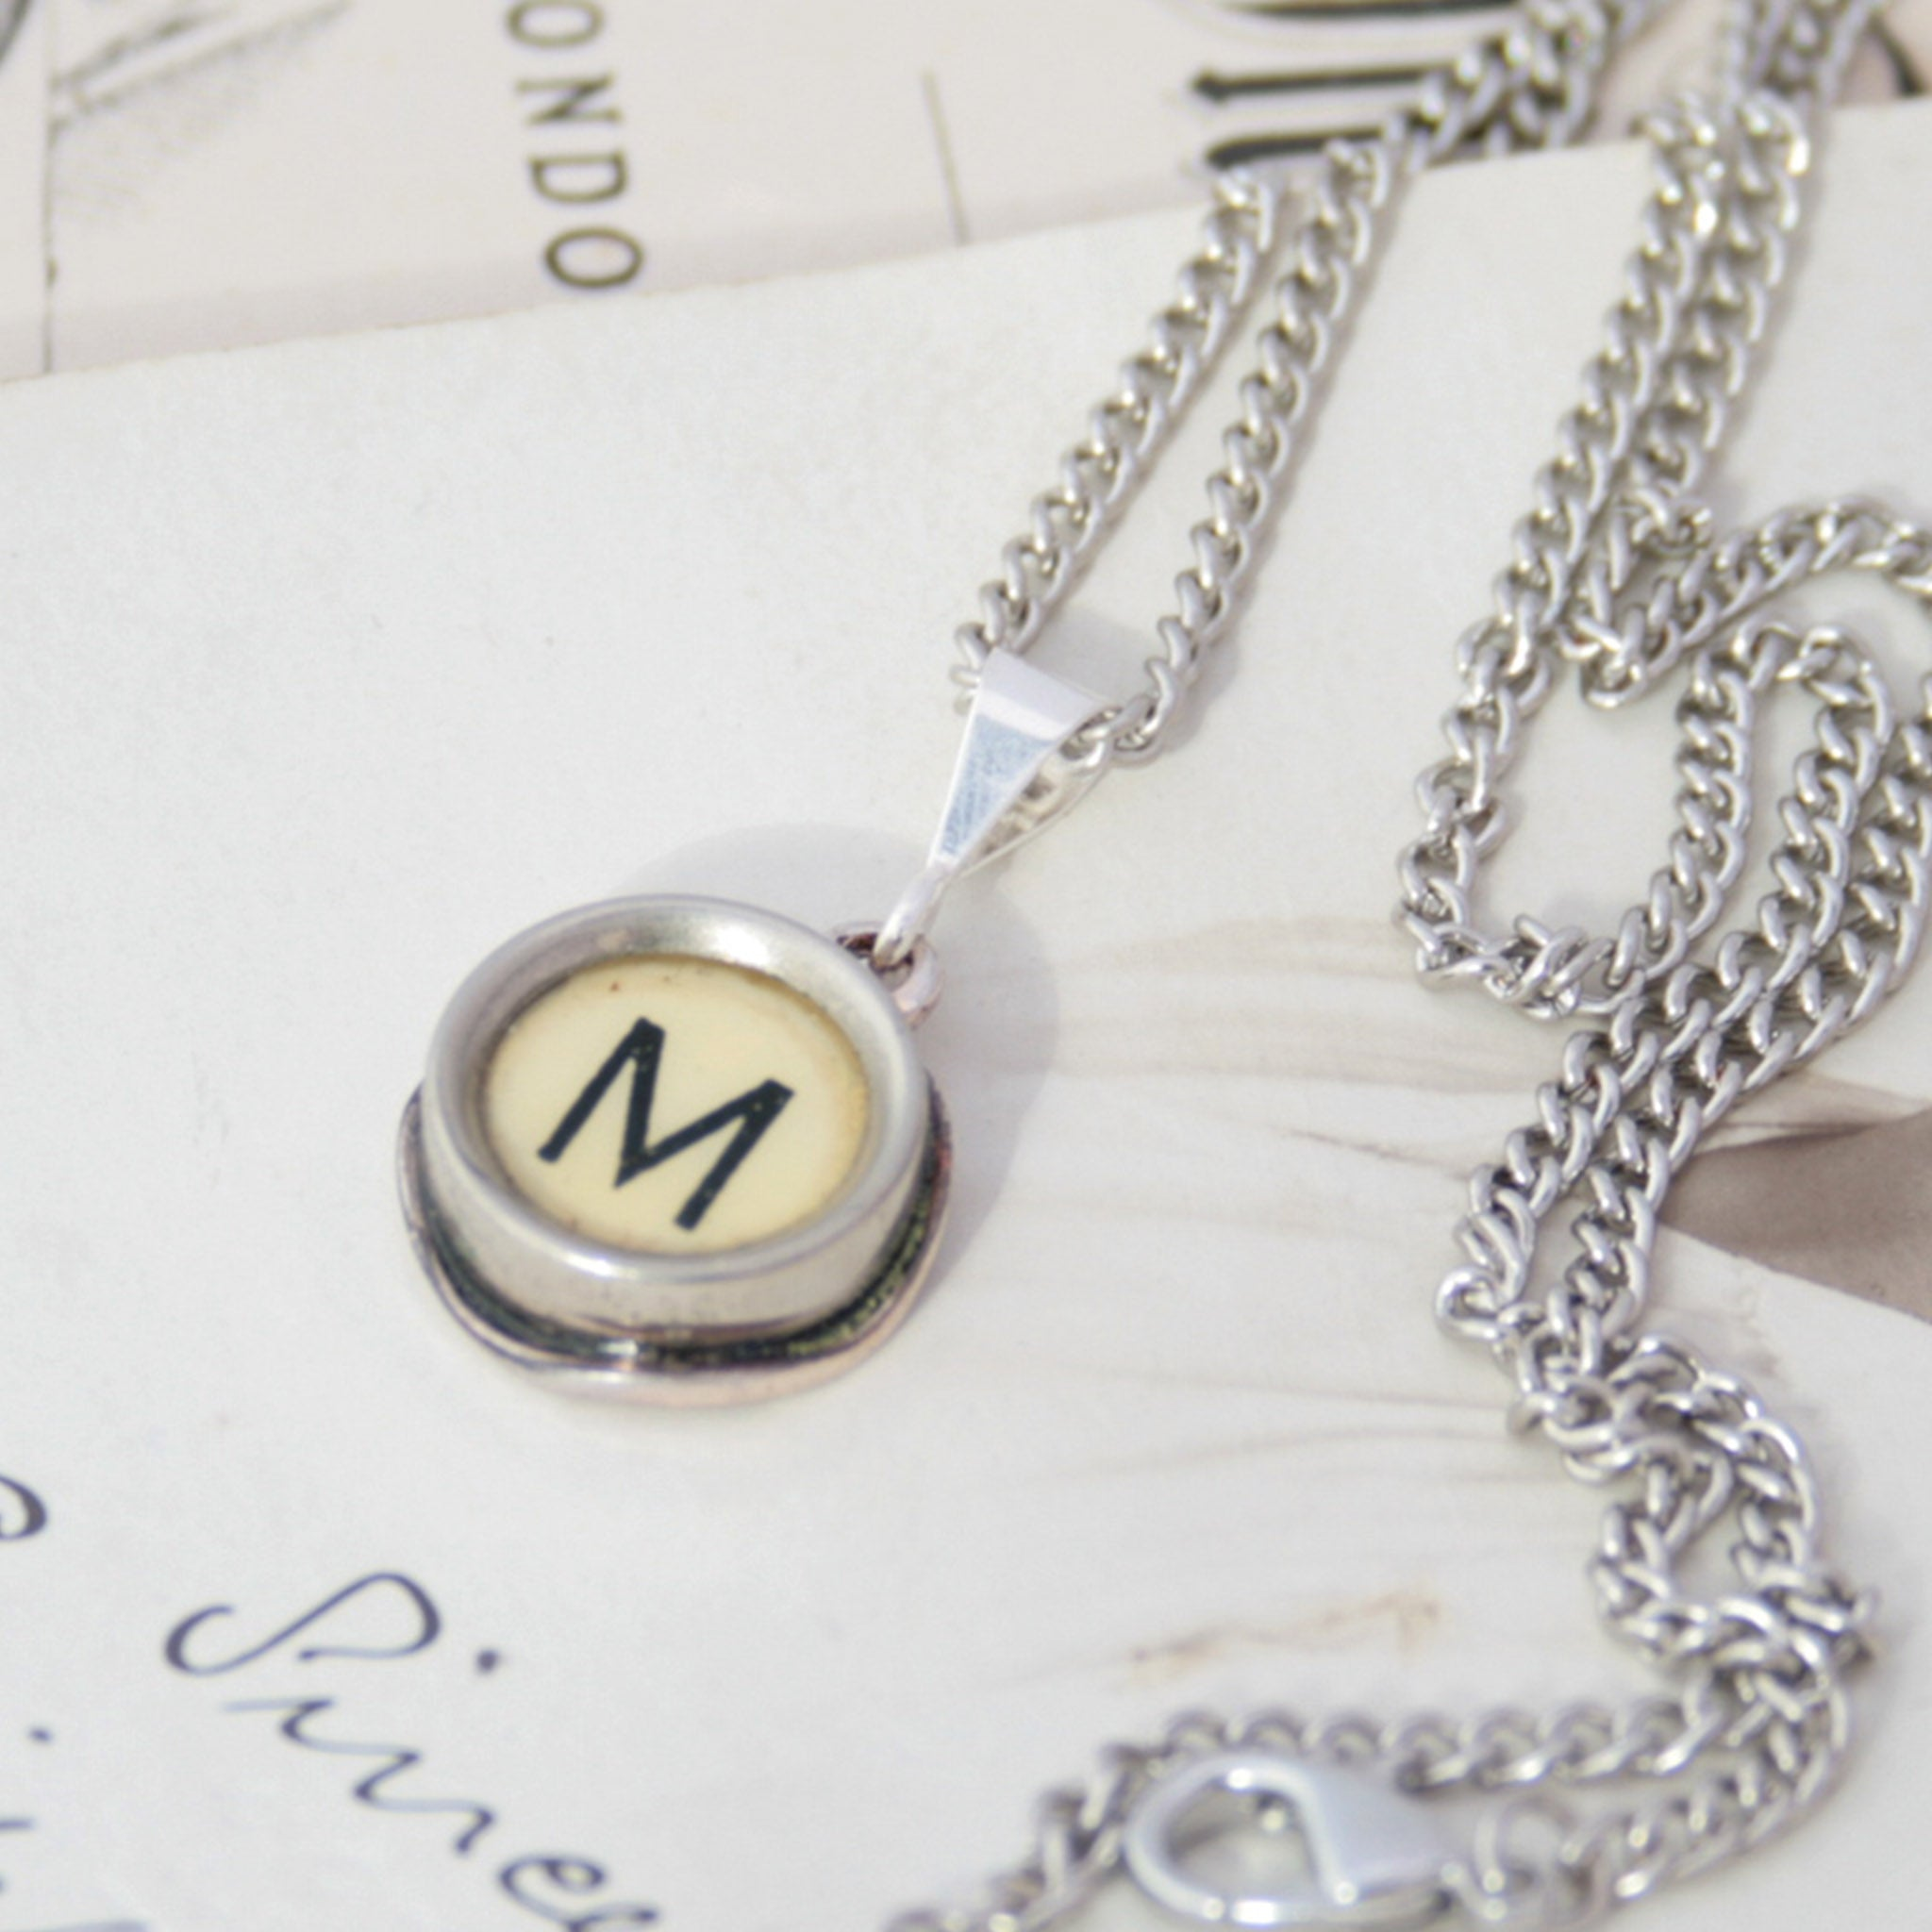 M letter necklace in ivory color made of vintage typewriter key